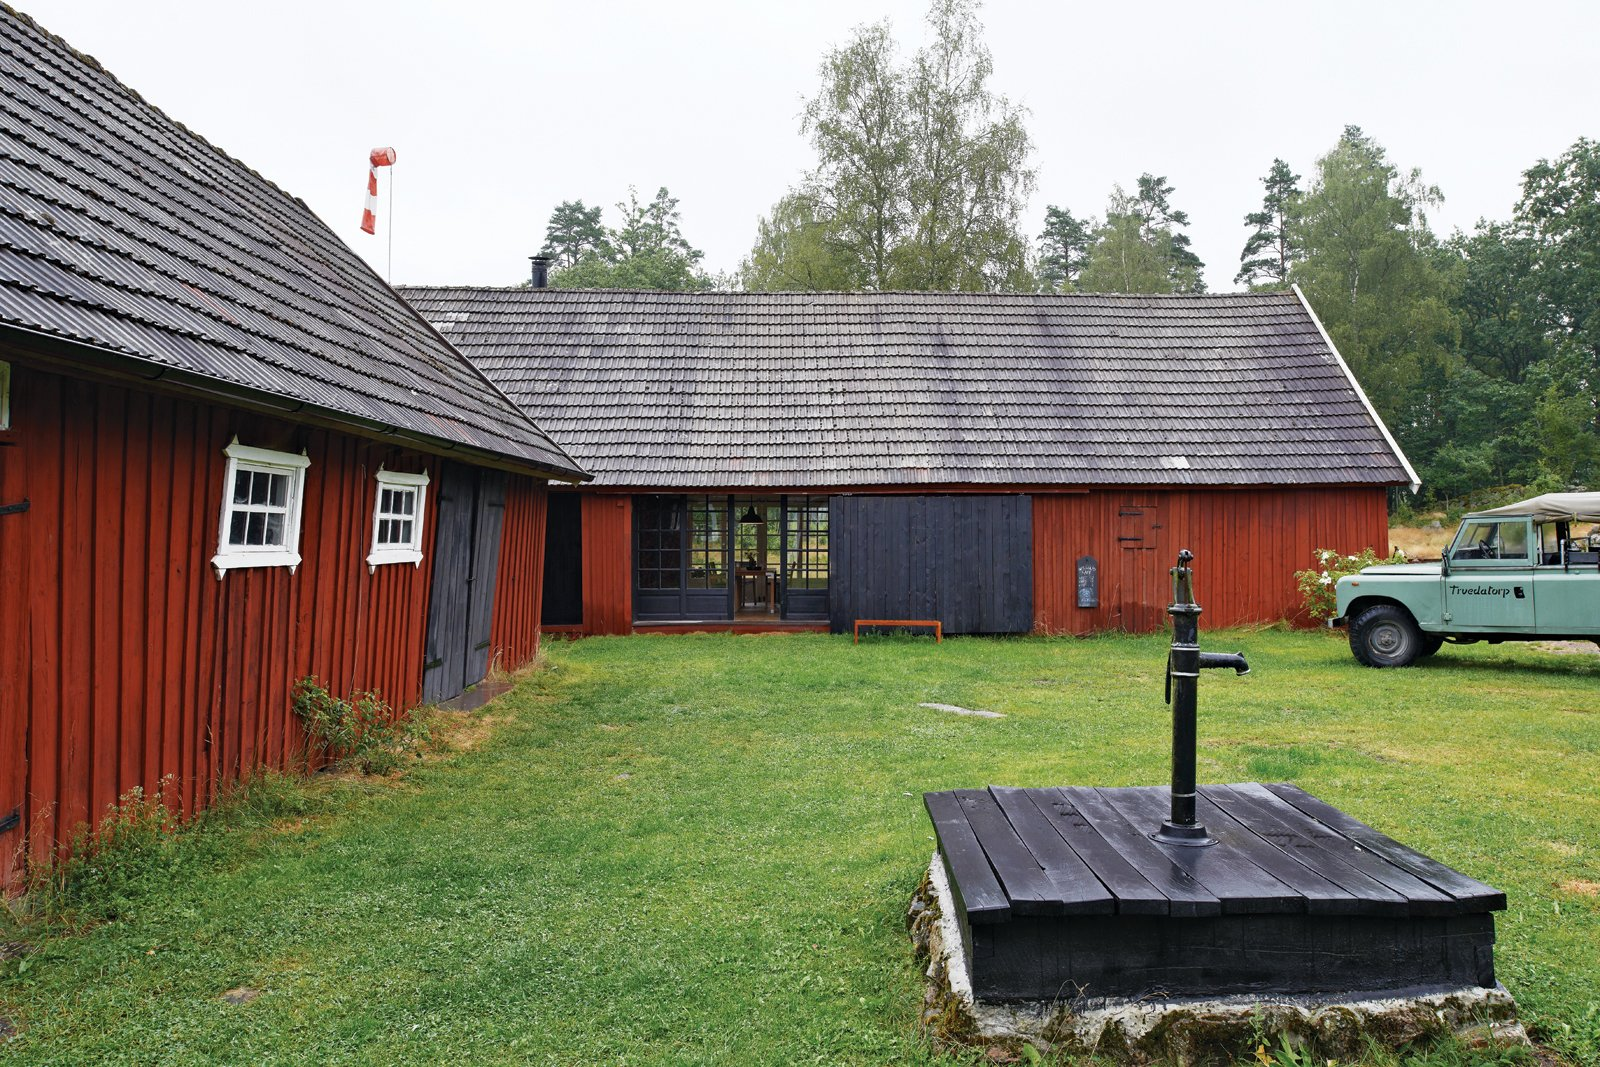 The simple, pared-down aesthetic and the open-ended time frame of the project—along with the couples' building and design skills—helped Odgård and Lyng Hansen achieve their renovation on a miniscule budget, with a project outline that ebbed and flowed with Odgård's professional successes in product design.  Photo 9 of 12 in Modern Meets Traditional in a Swedish Summer House